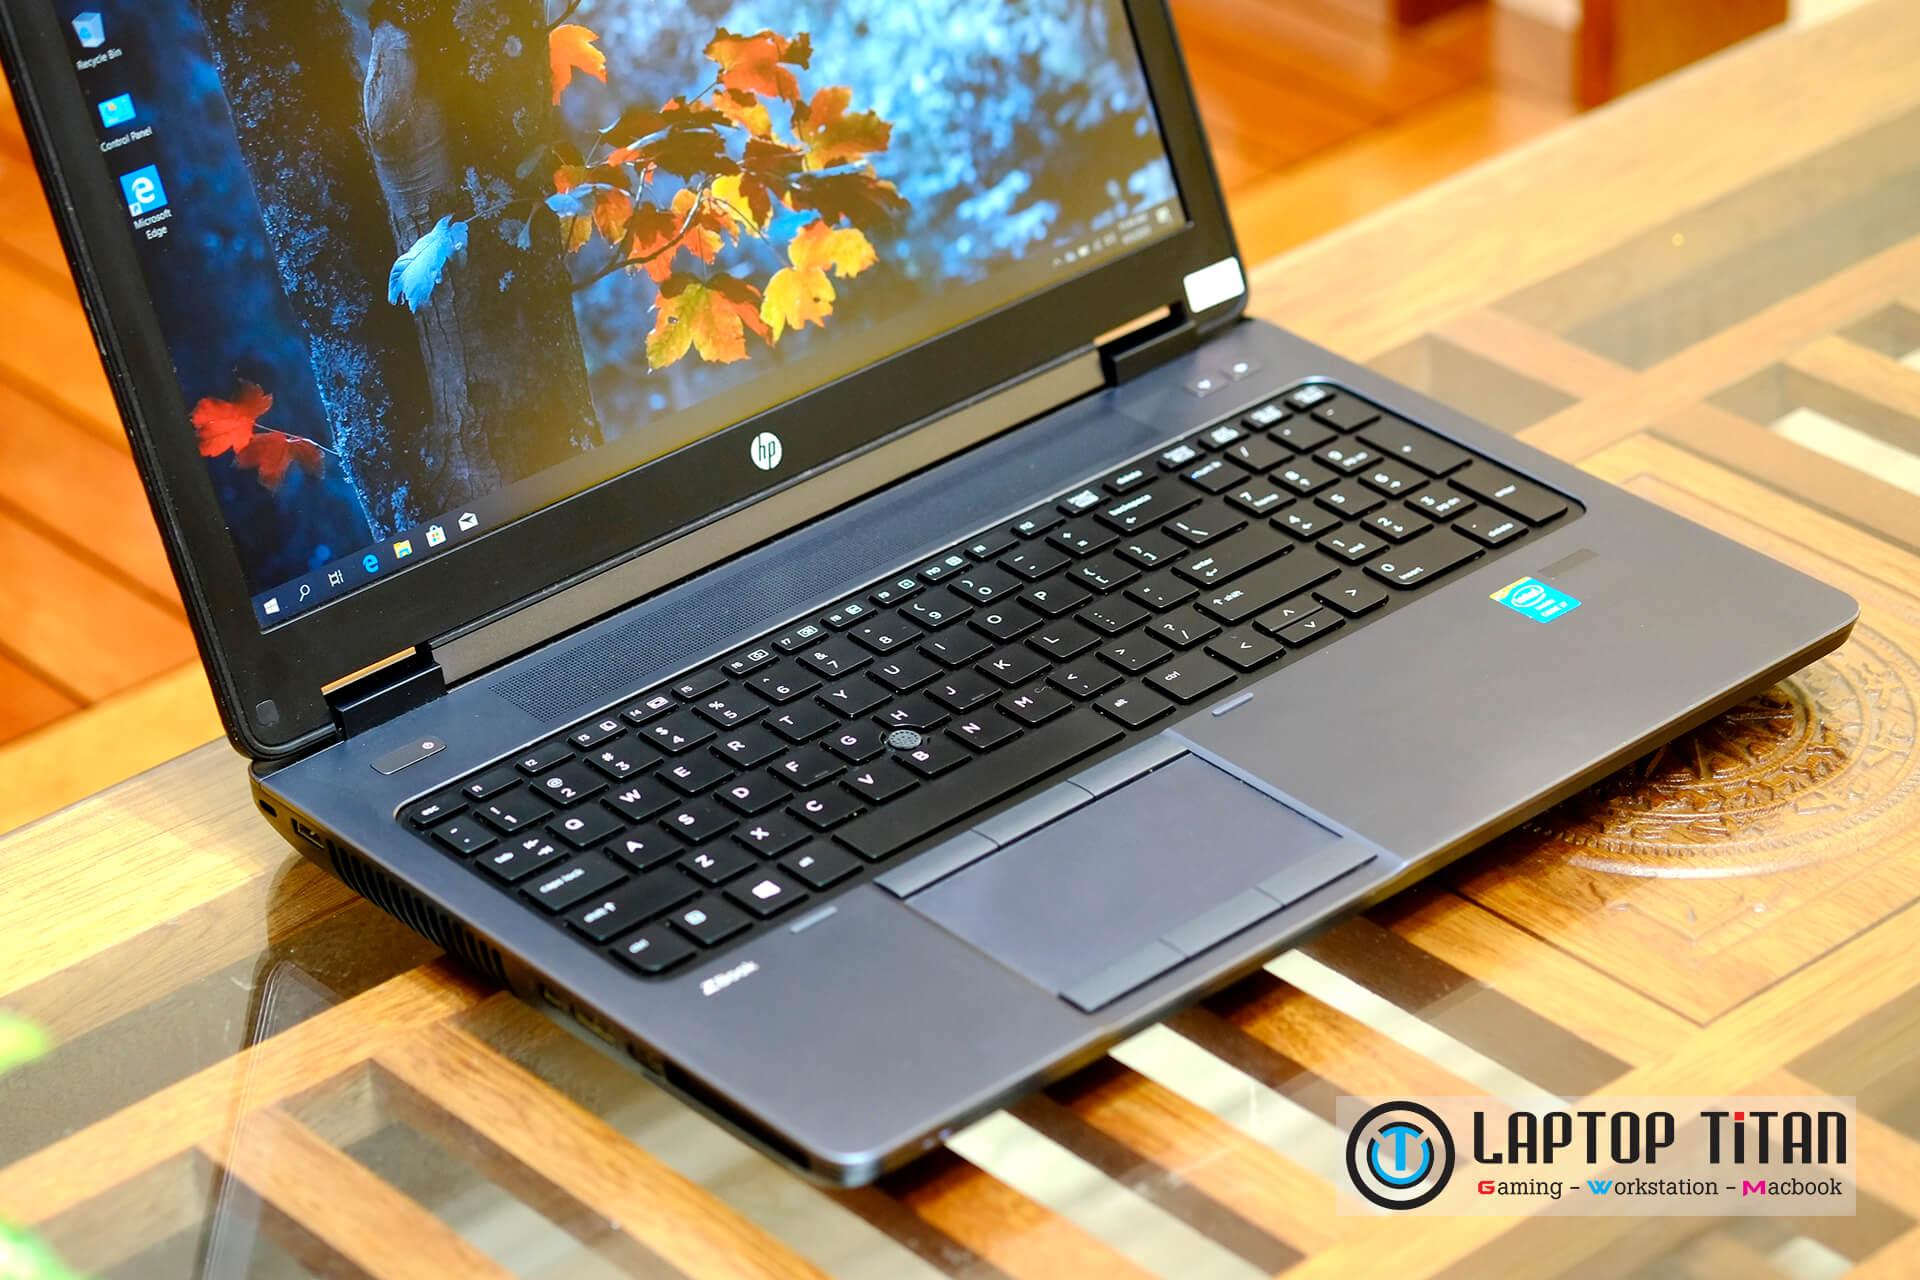 HP Zbook 15 G2 Core i7 4800MQ / 8GB / 128GB + 500GB / nVidia Quadro K1100M / 15. 14827136_HP-Zbook-15-G2-3